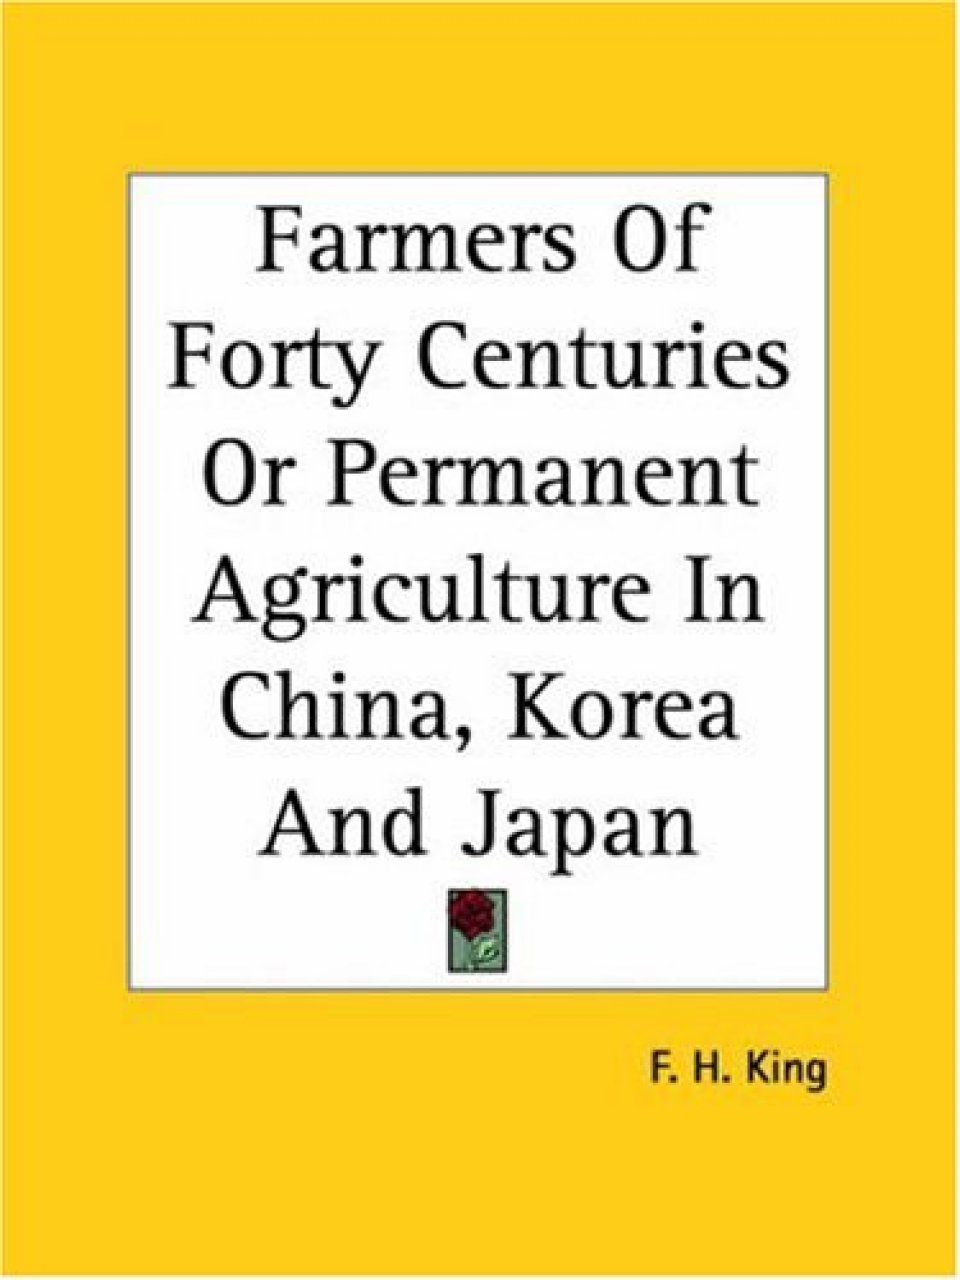 Farmers of Forty Centuries: Permanent Agriculture in China, Korea, Japan